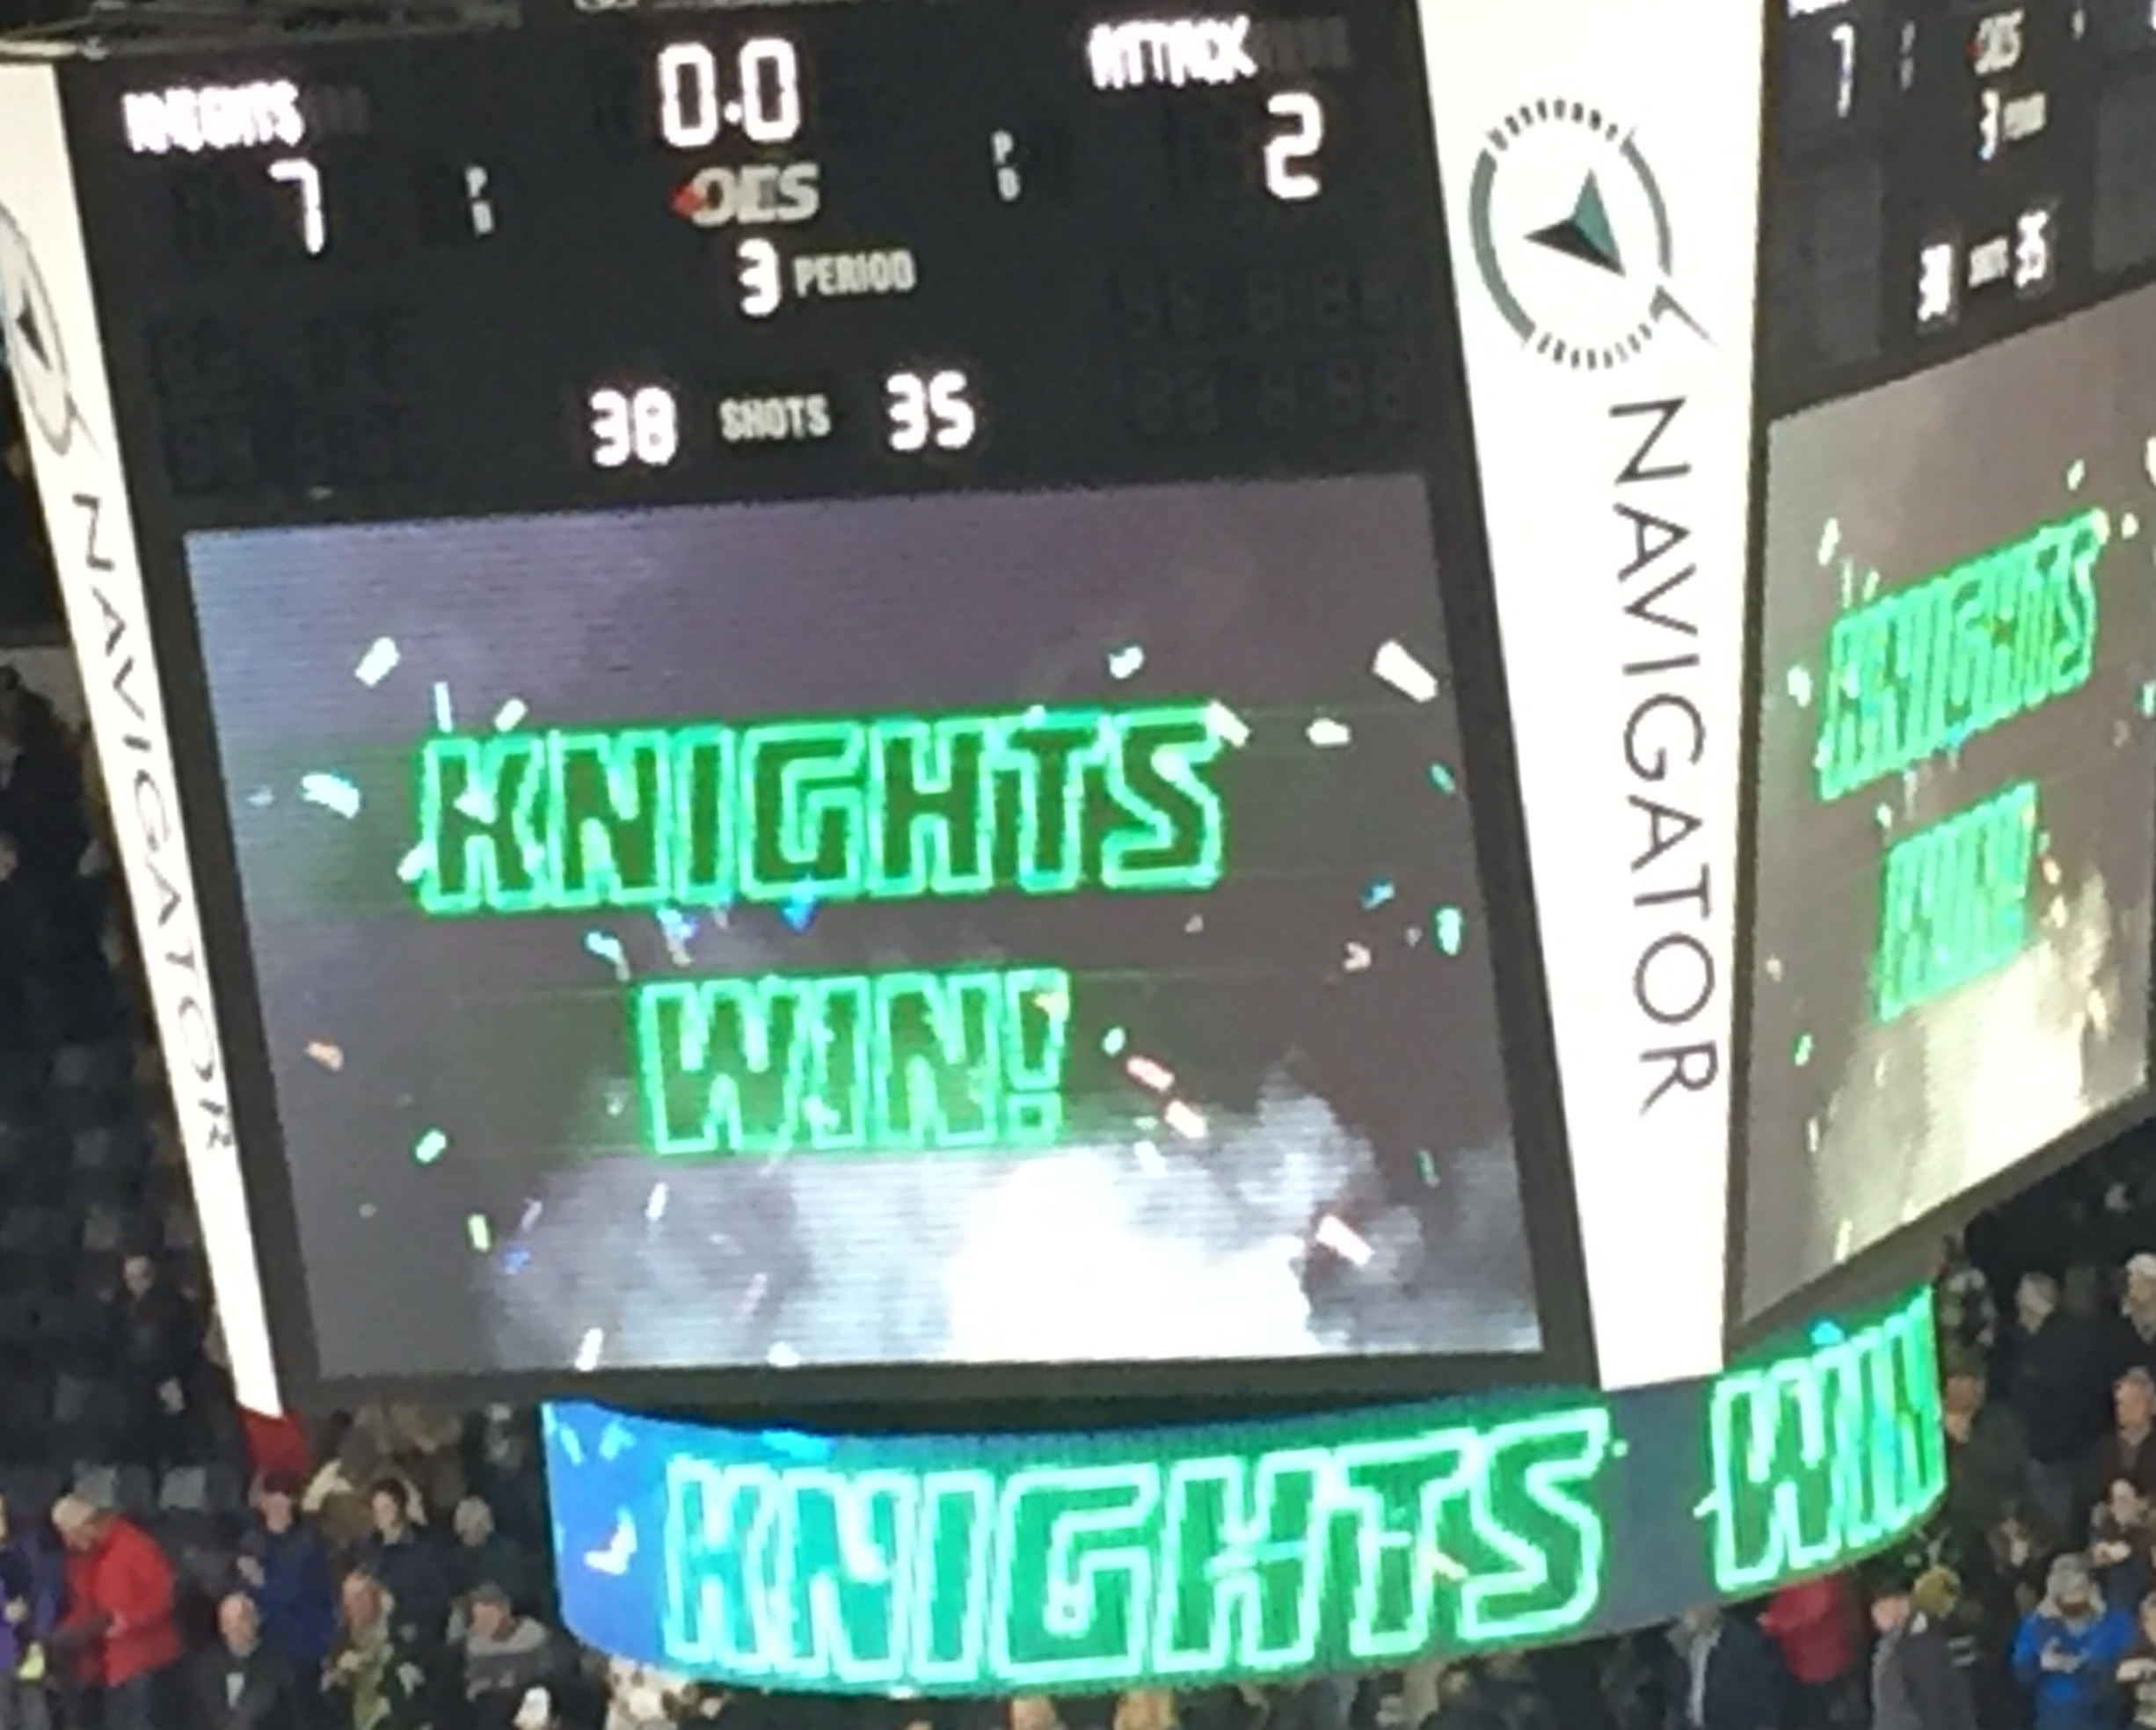 Knights win big and extend their winning streak to 11 games